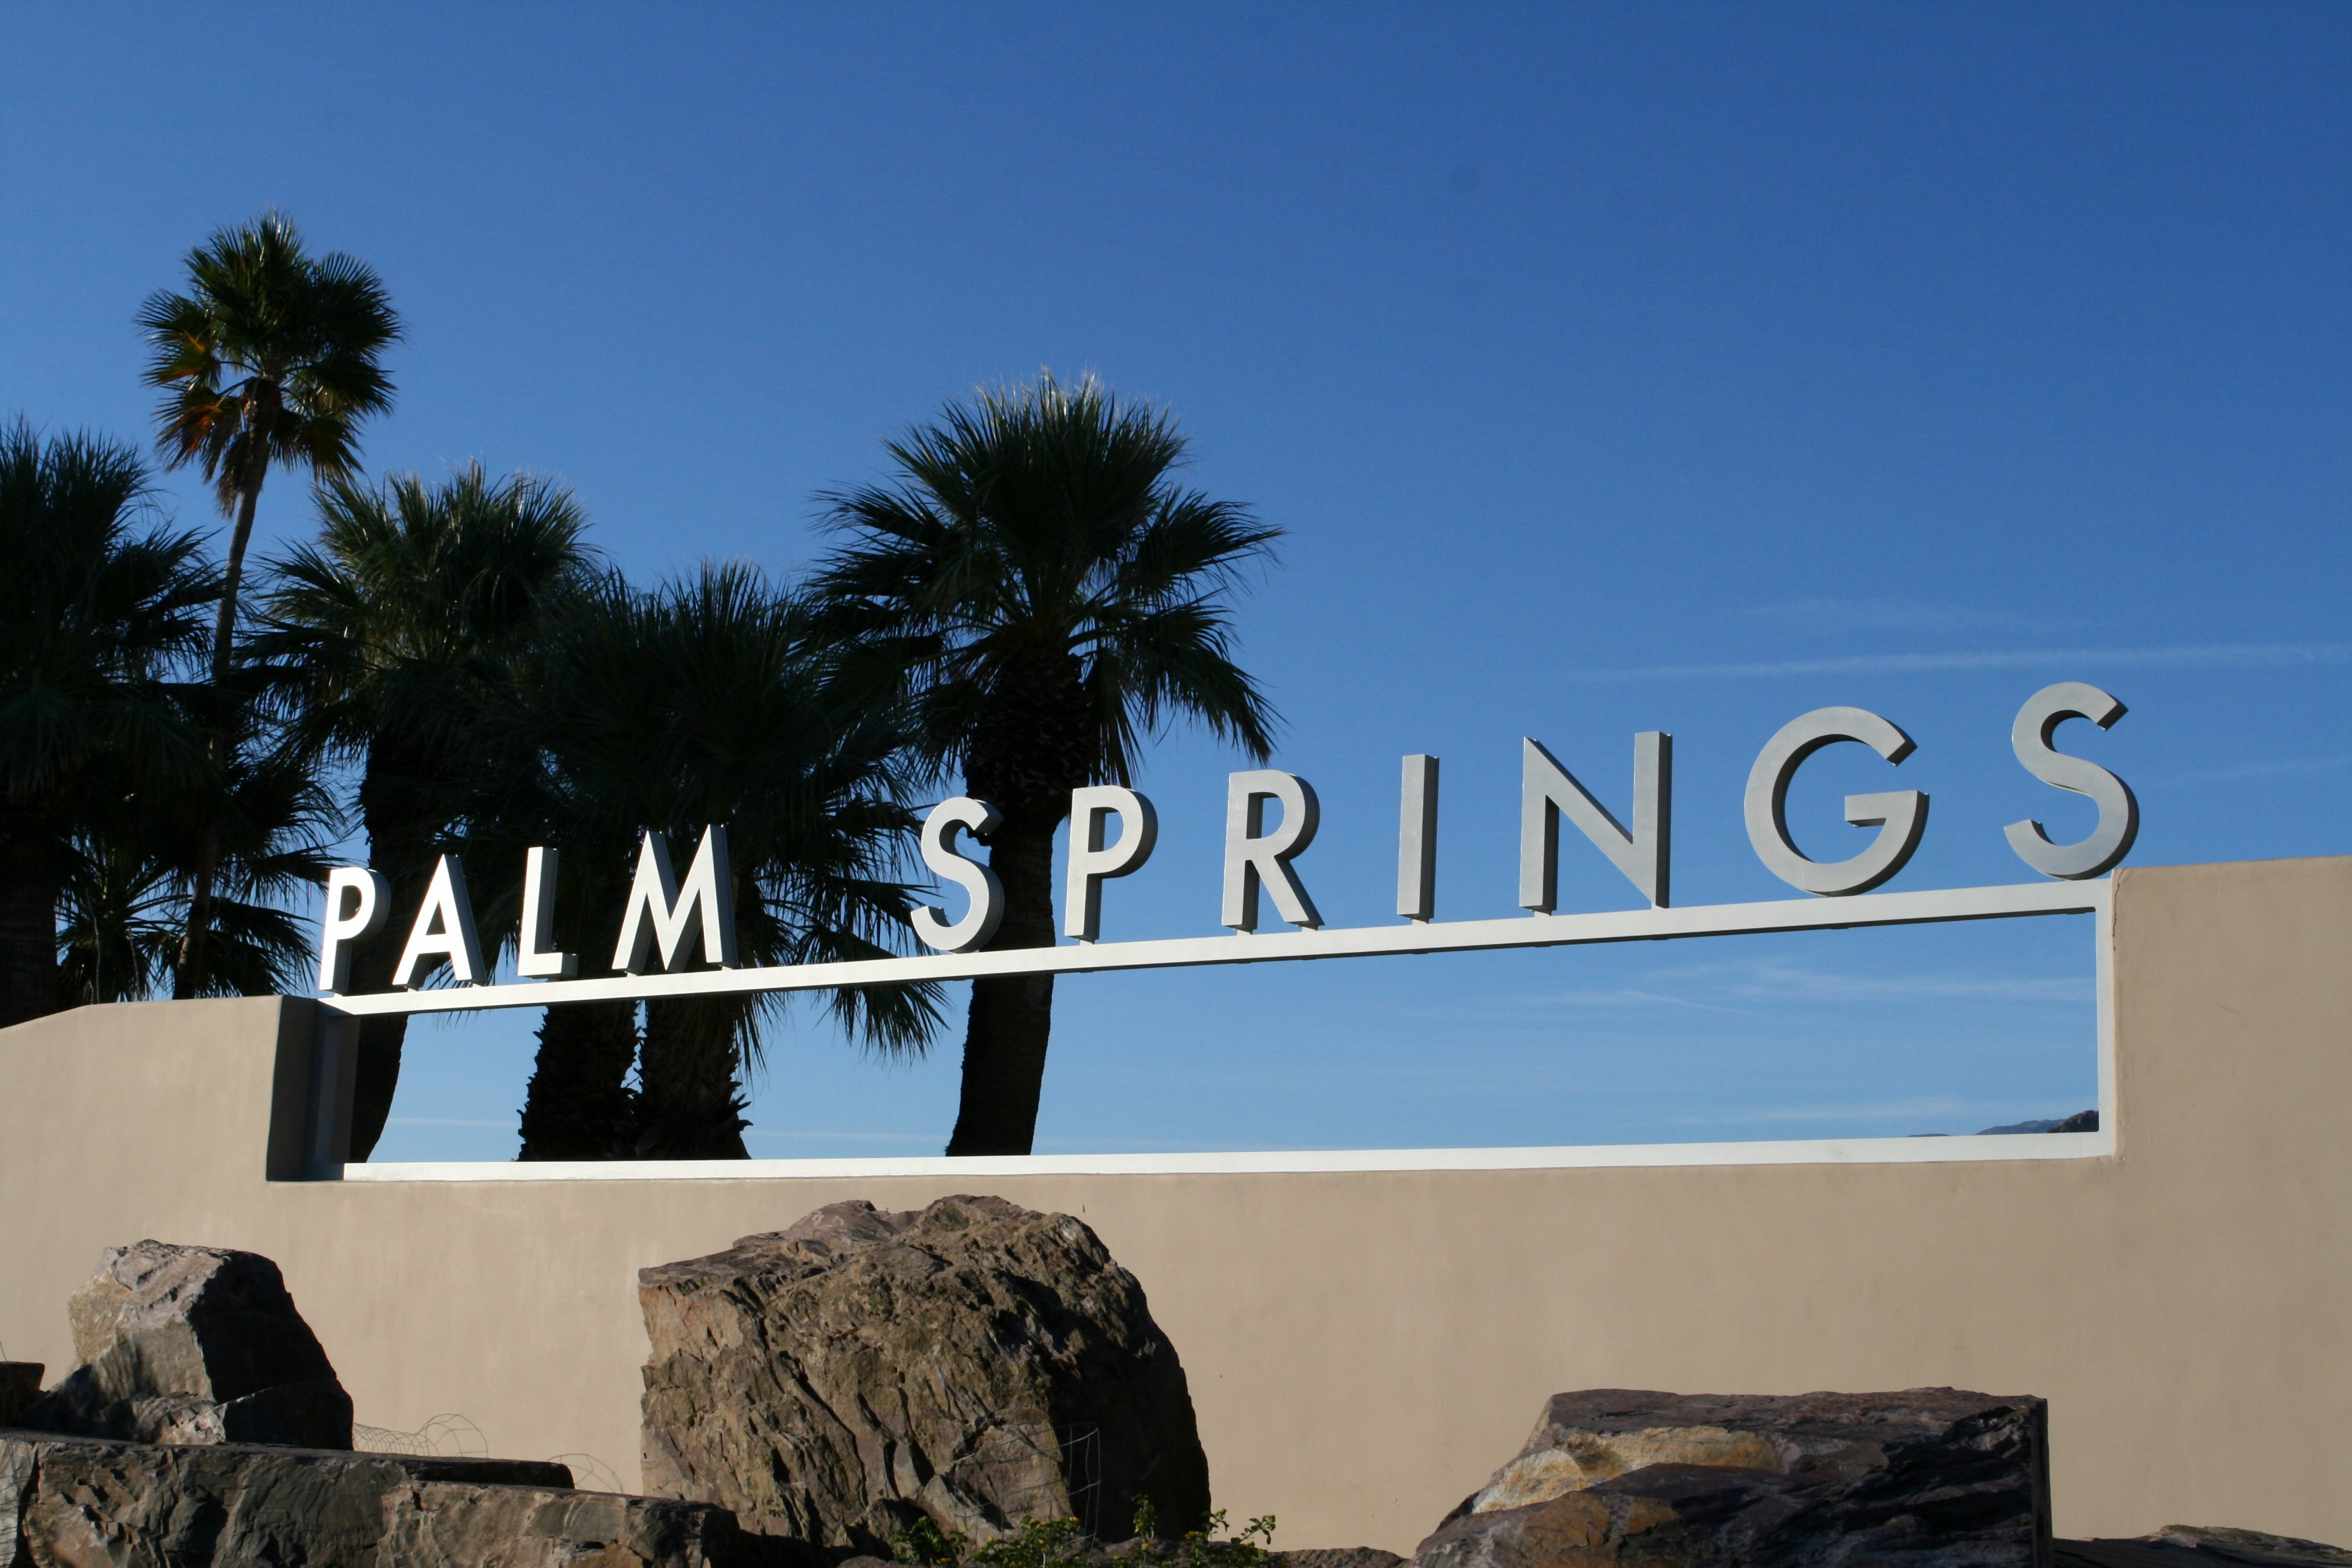 Palm Springs and outlet shopping day tour